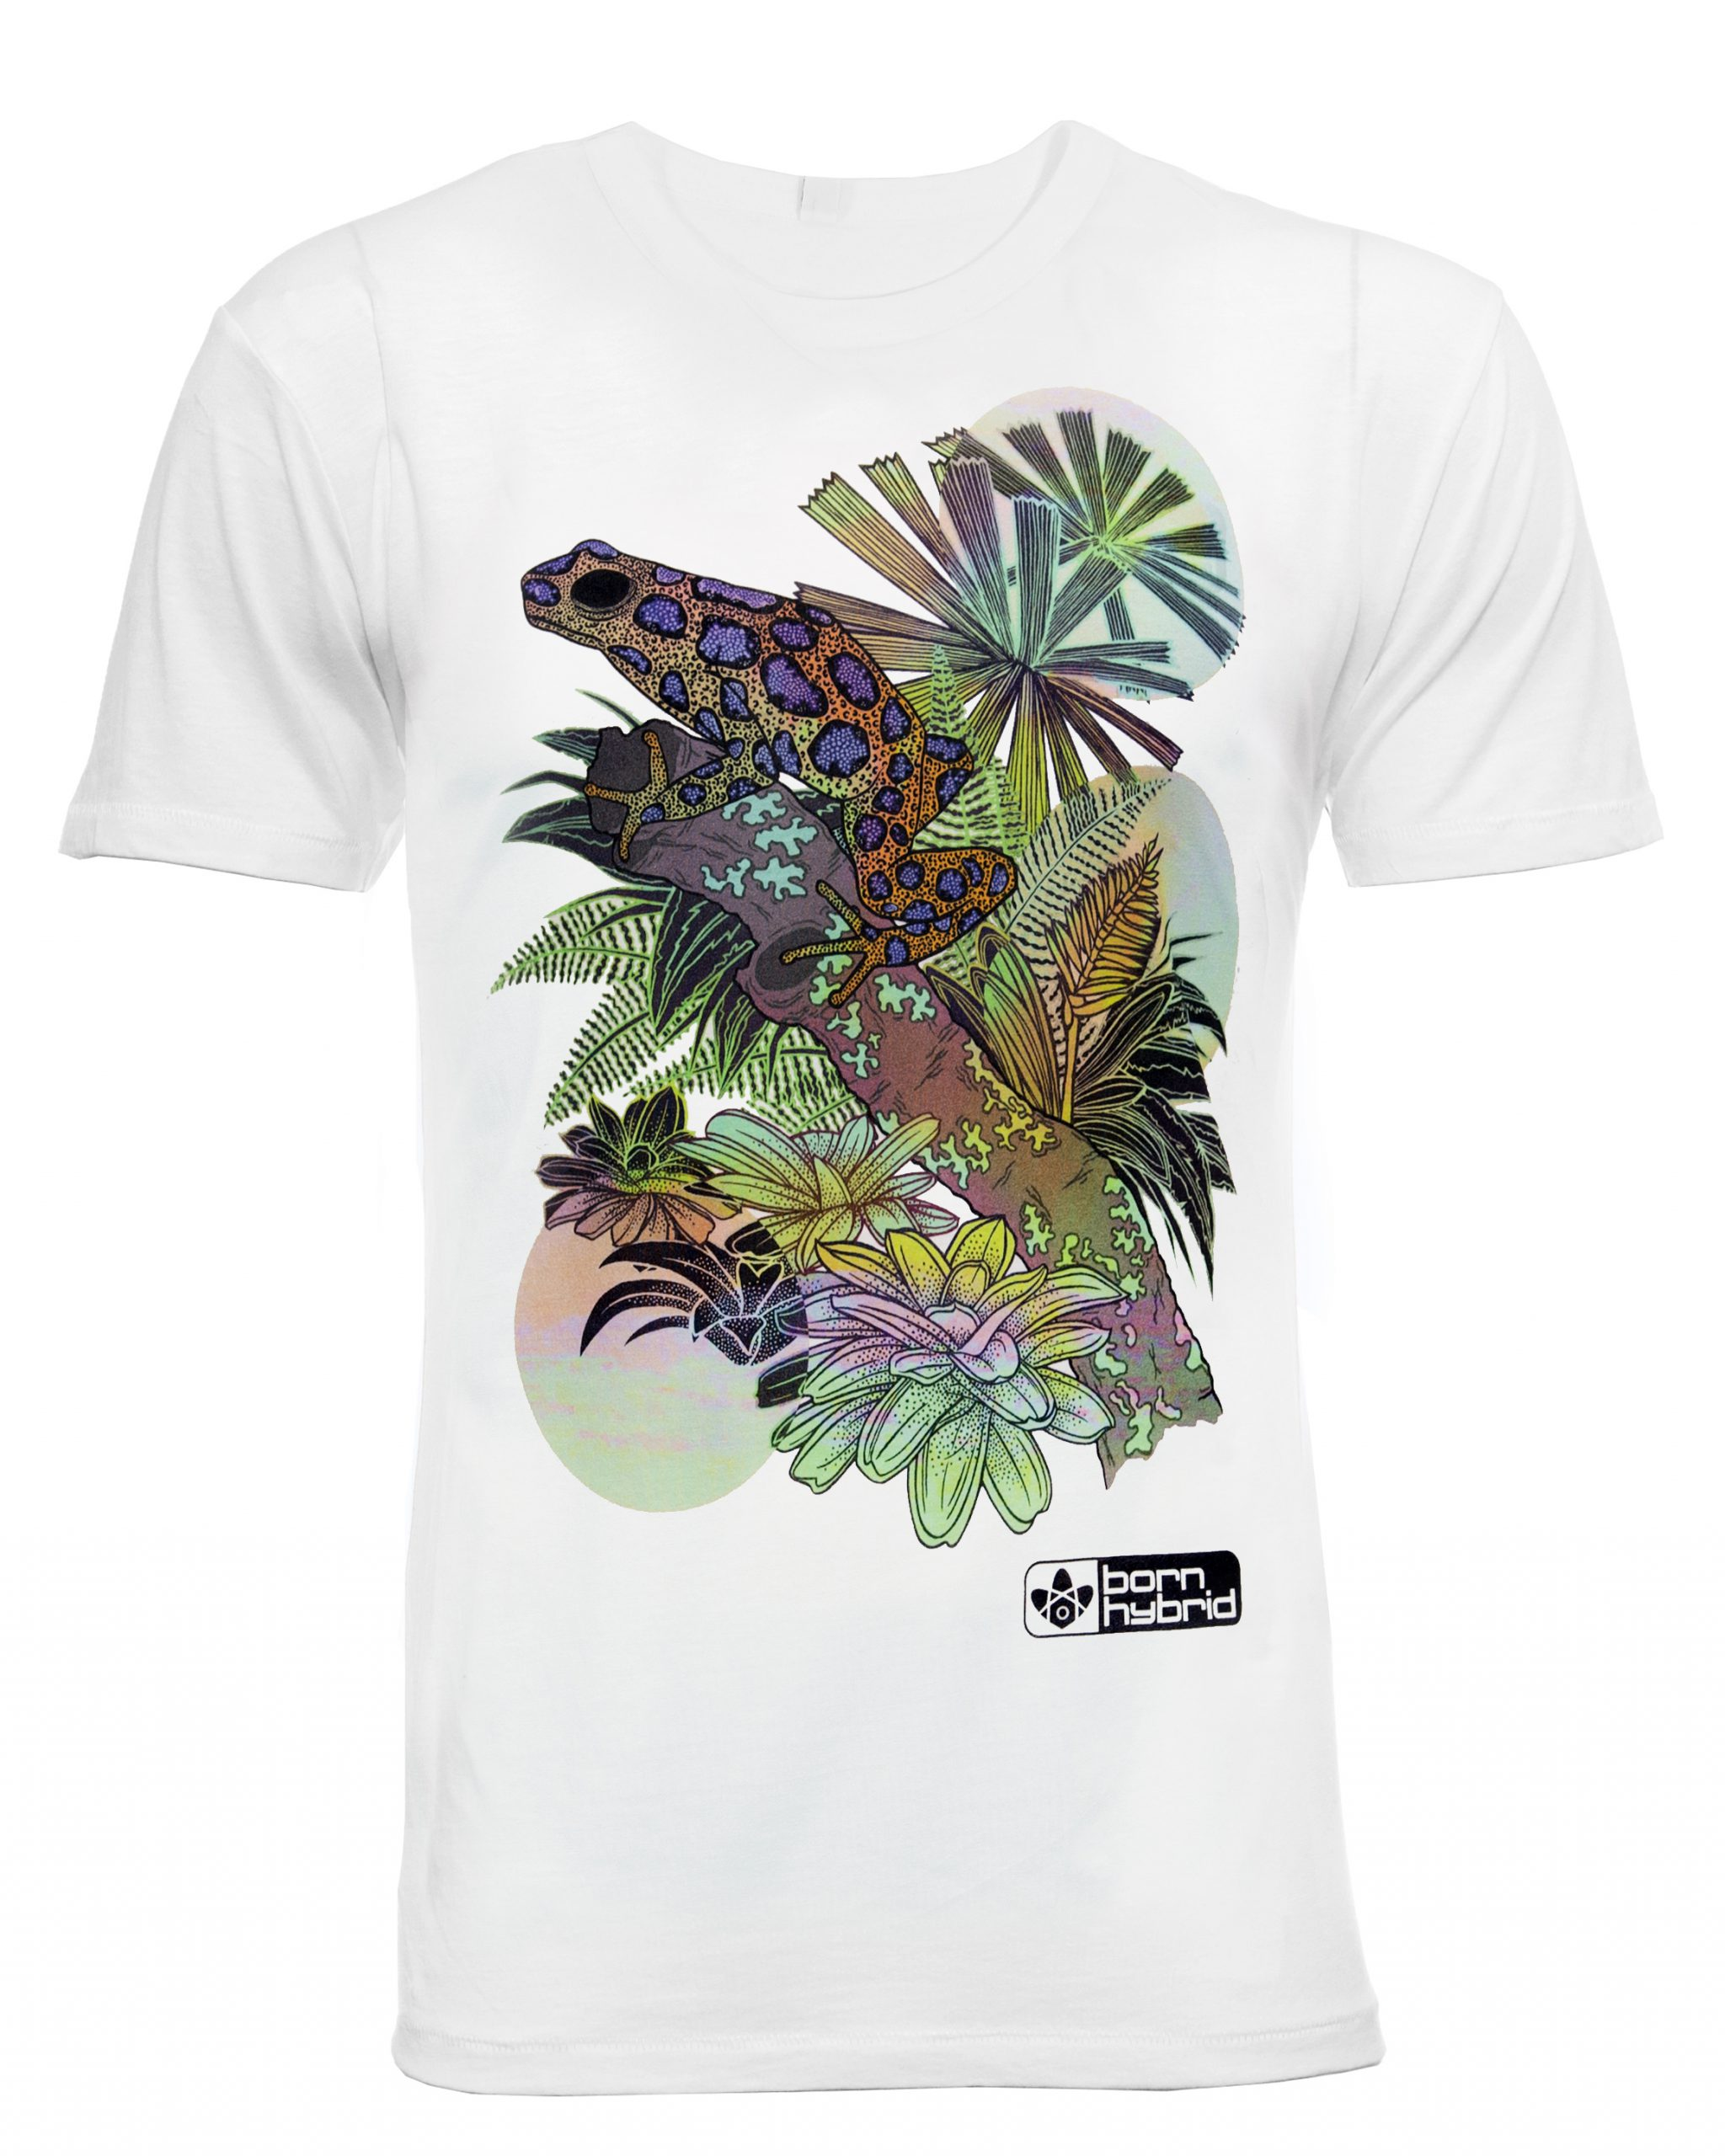 Frog graphic T-shirt in white with colourful poison dart frog design. Men's/unisex eco t-shirt by Born Hybrid